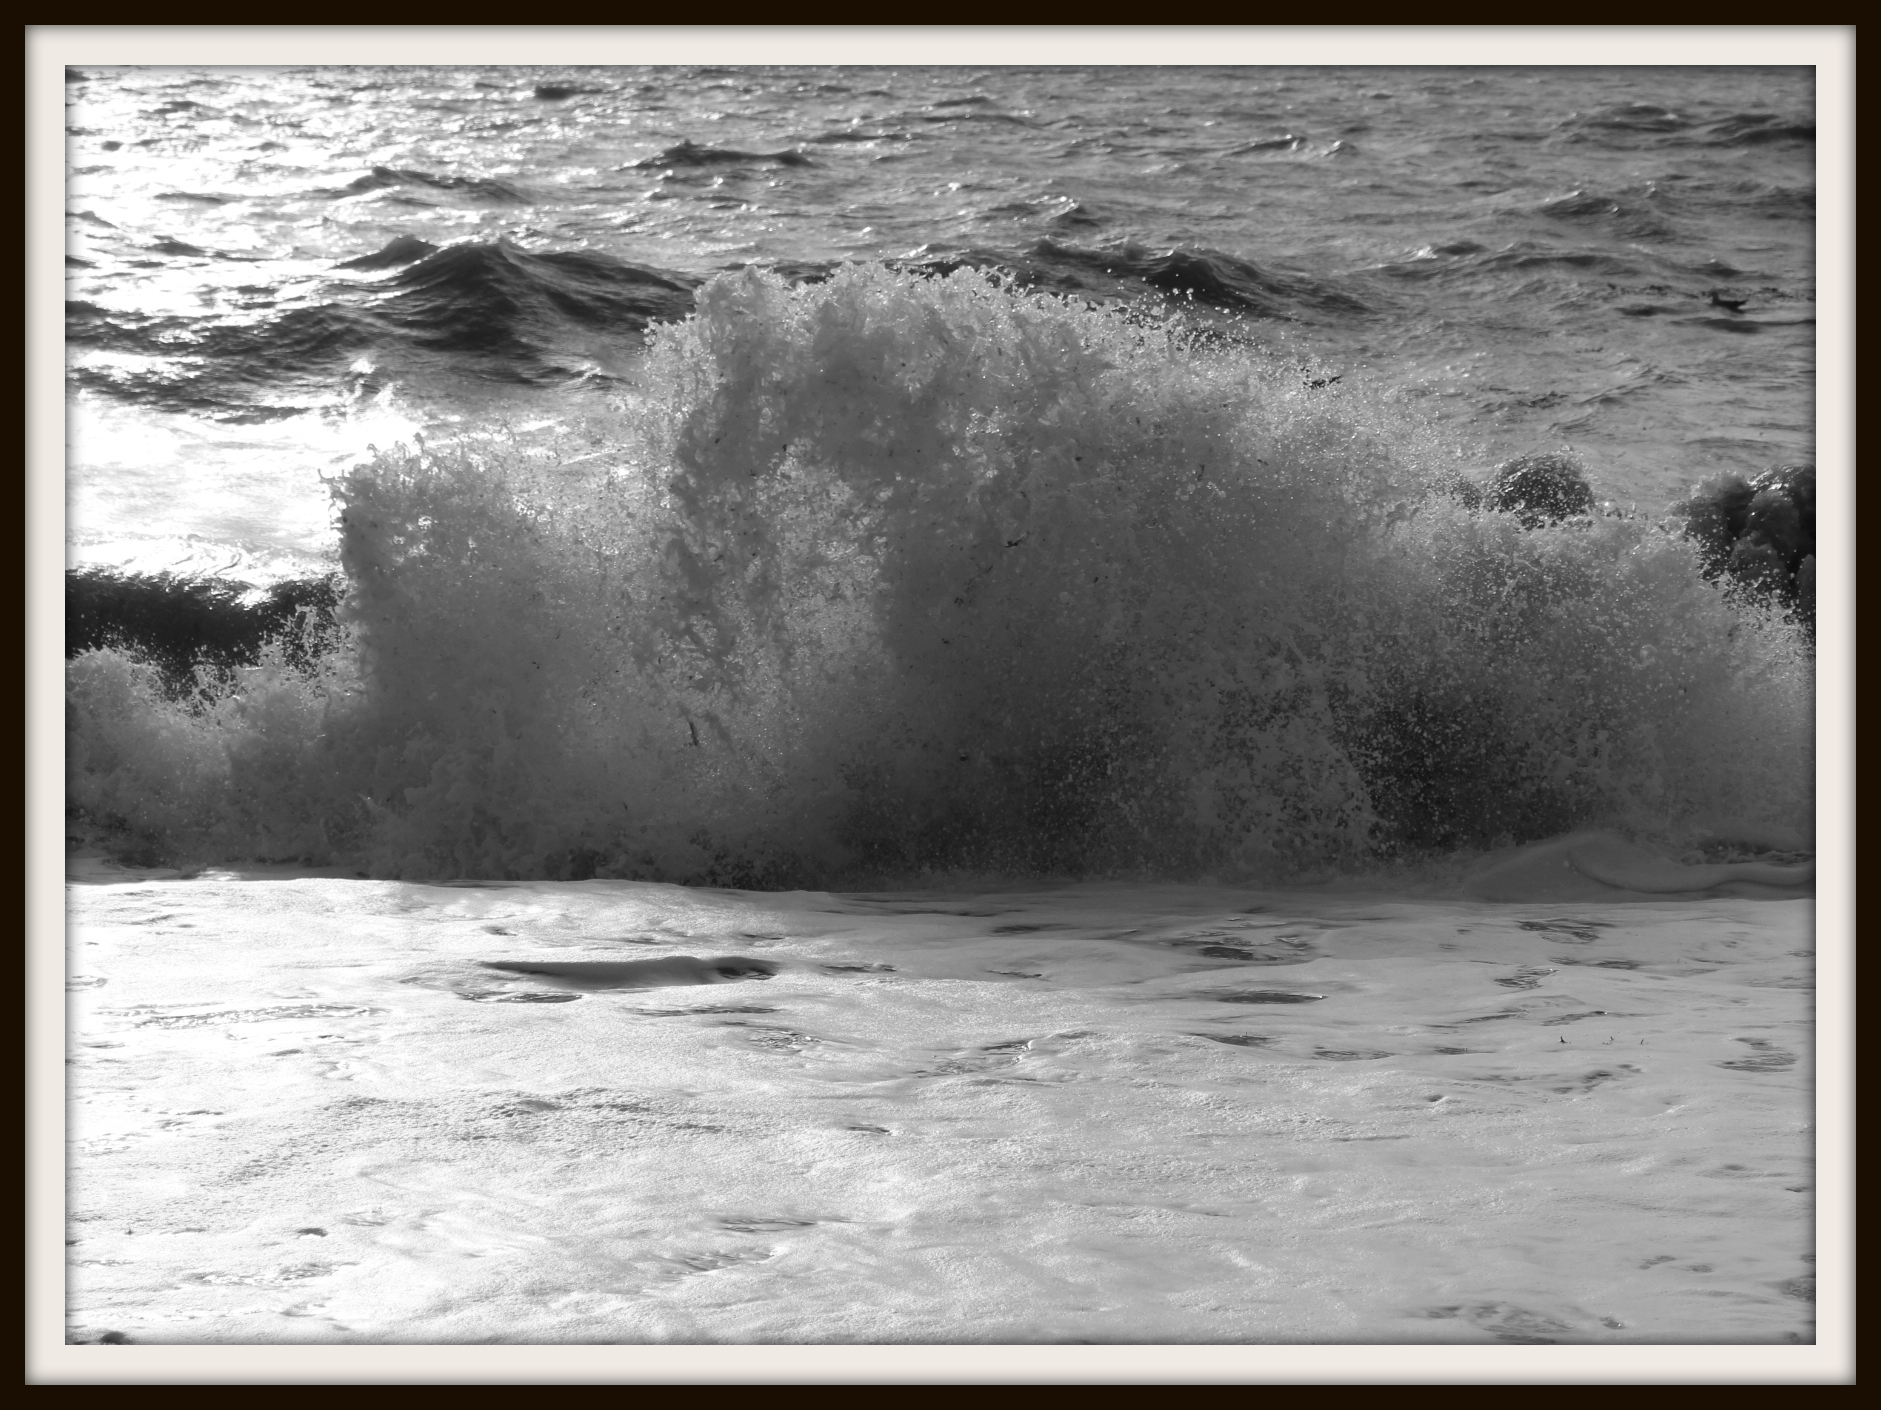 wave, waves, seaside, beach, Brighton beach,  photography, blogging, #MySundayPhoto